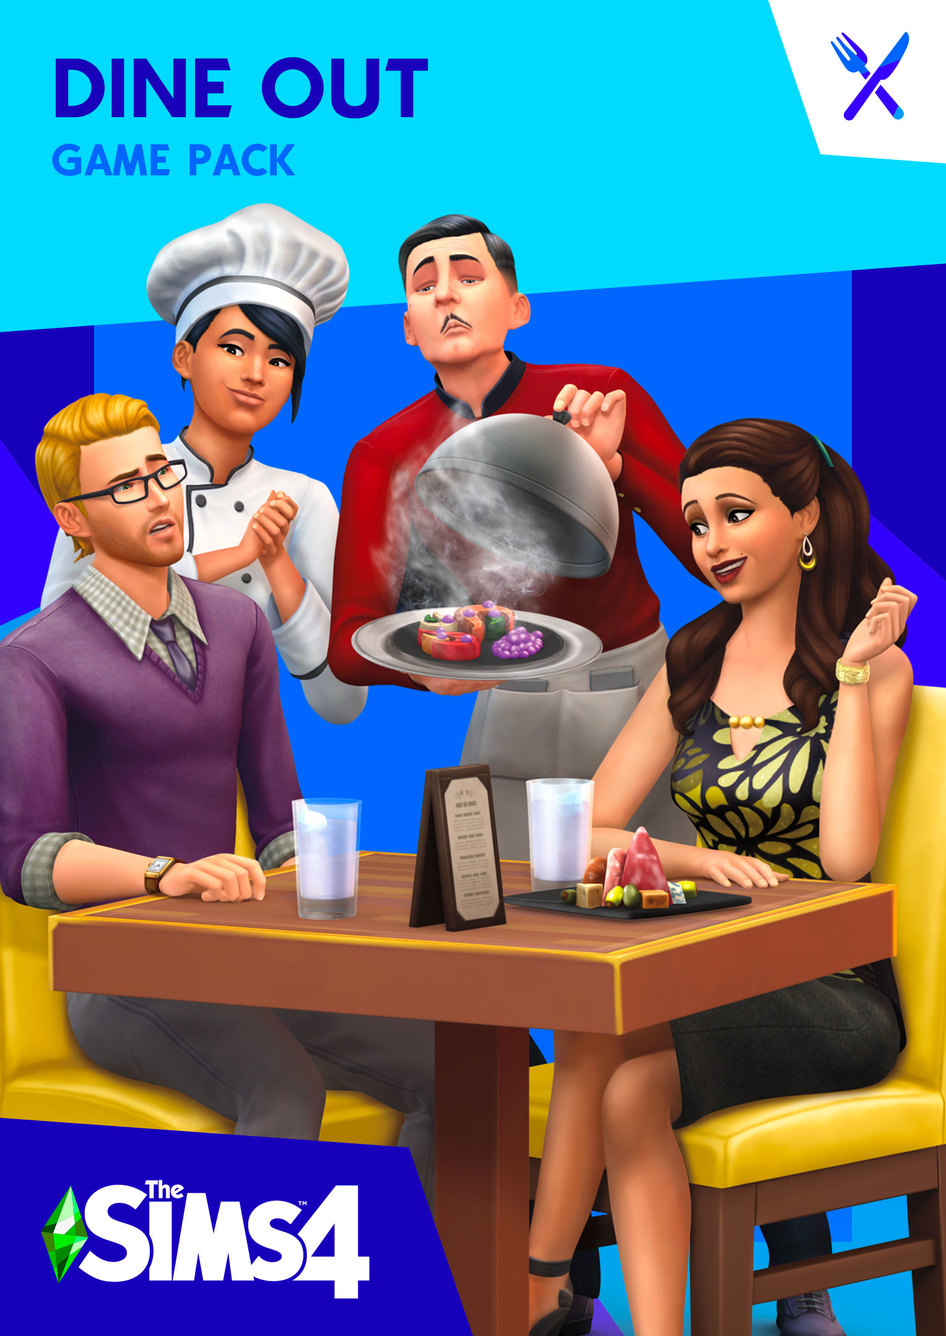 THE SIMS 4 DINE OUT - Origin